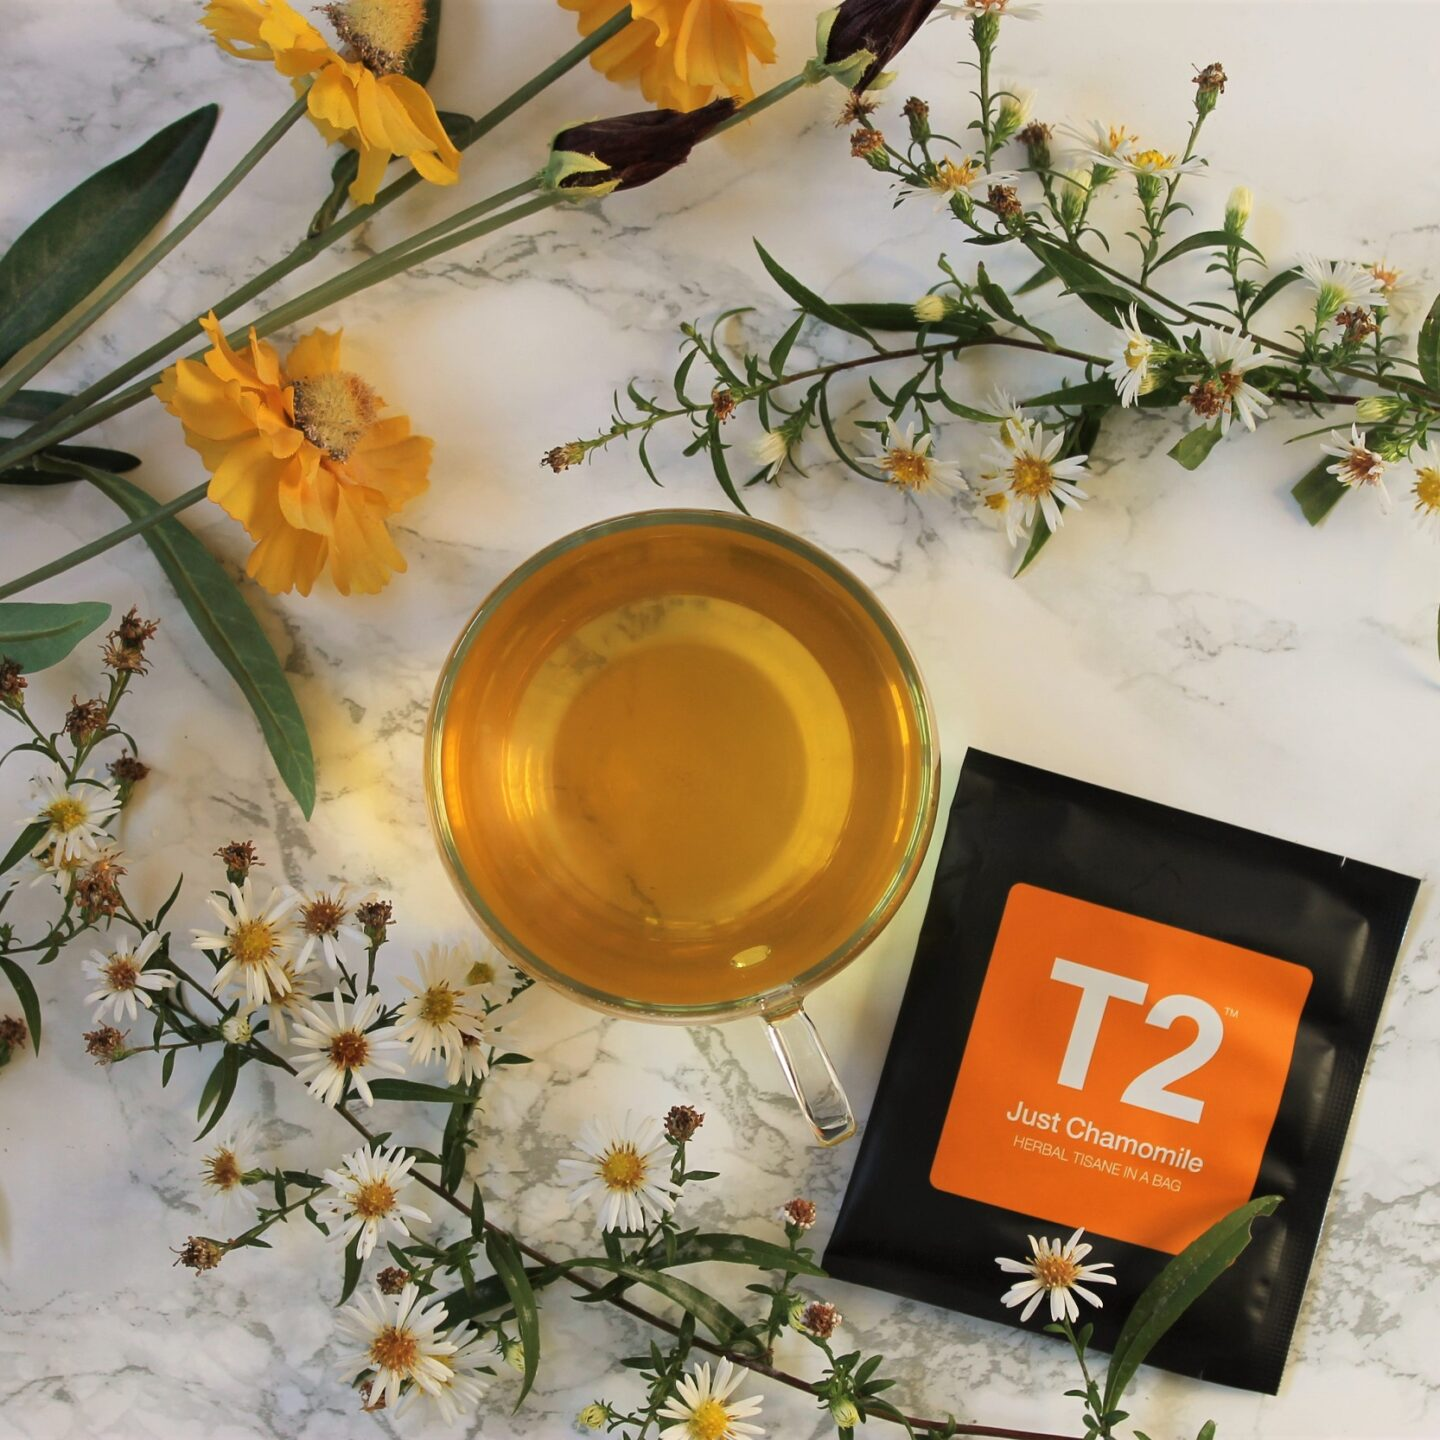 T2 Just Chamomile Tea Review